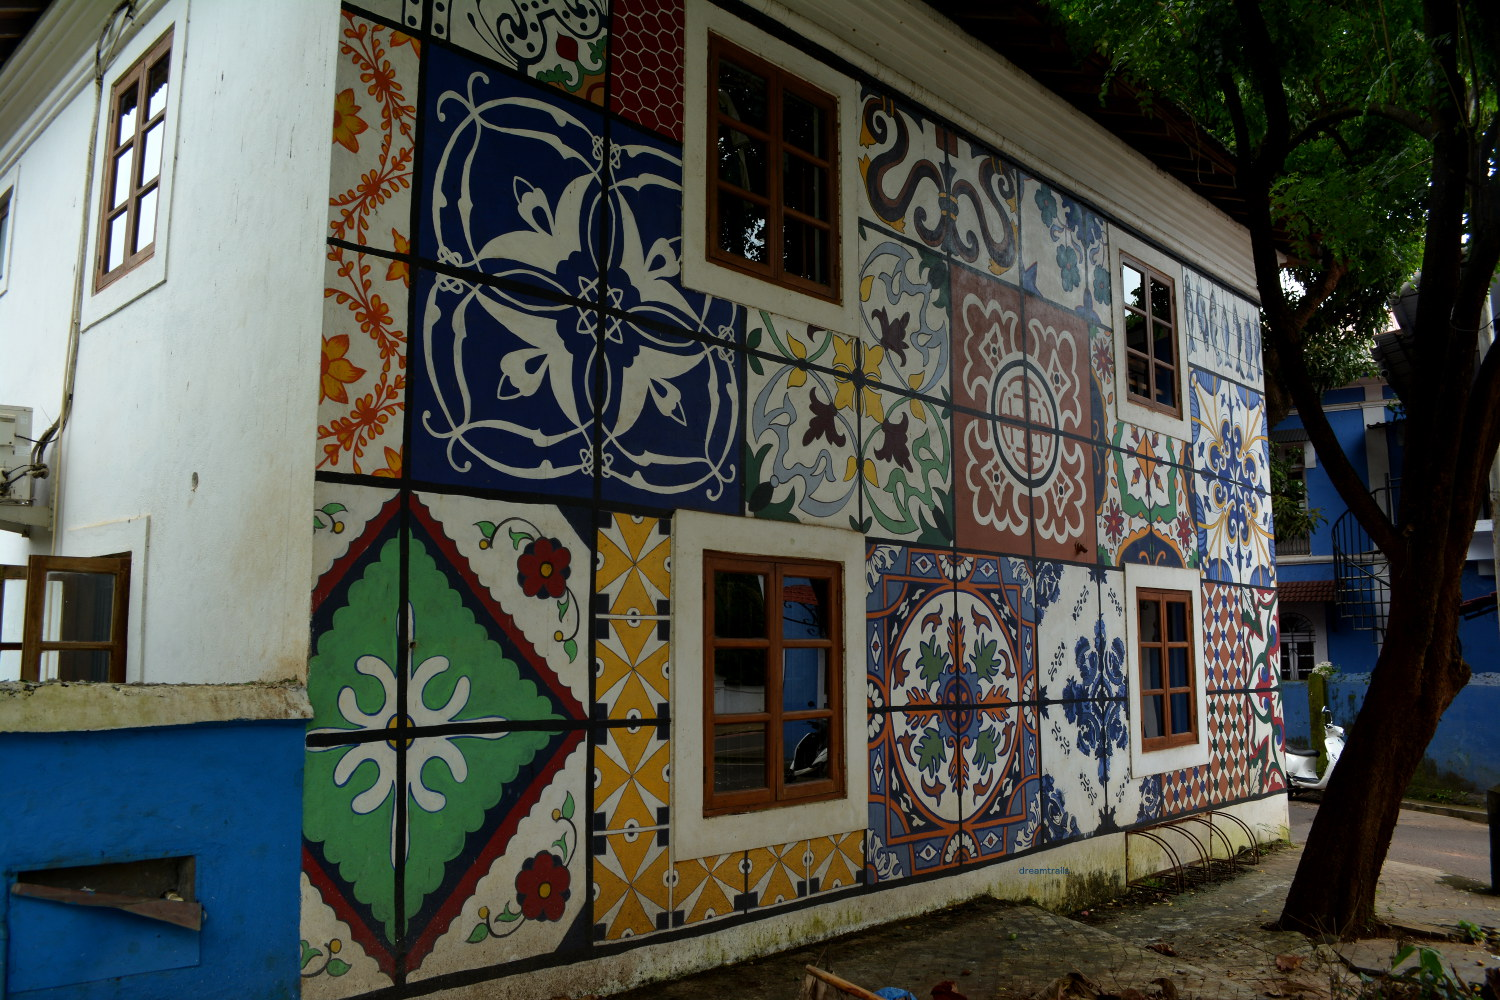 Artistic Wall at Fontainhas Panjim Goa